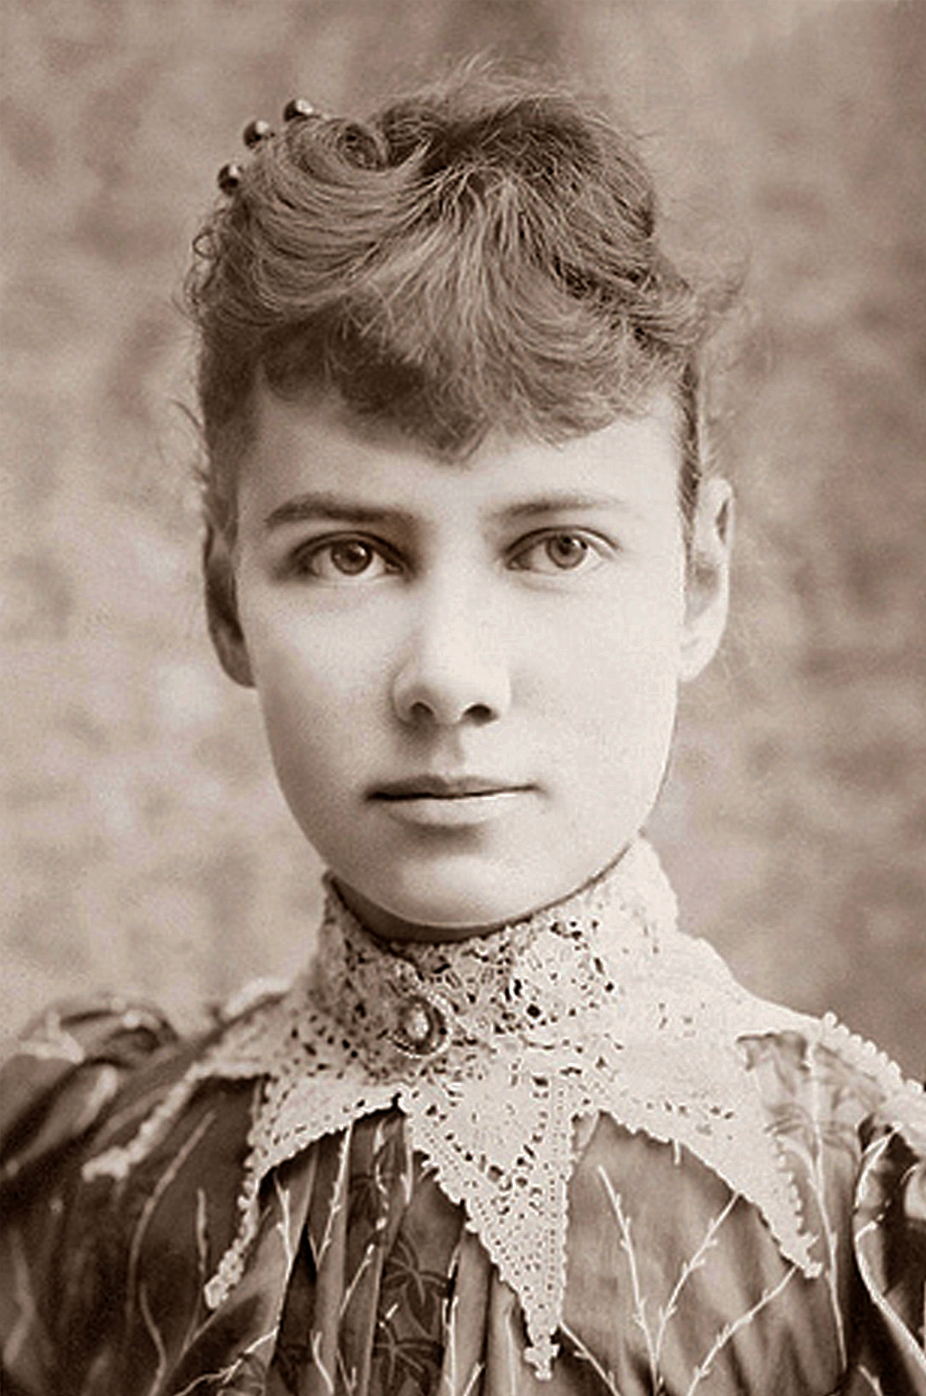 NELLIE BLY - Wikipedia, the free encyclopedia